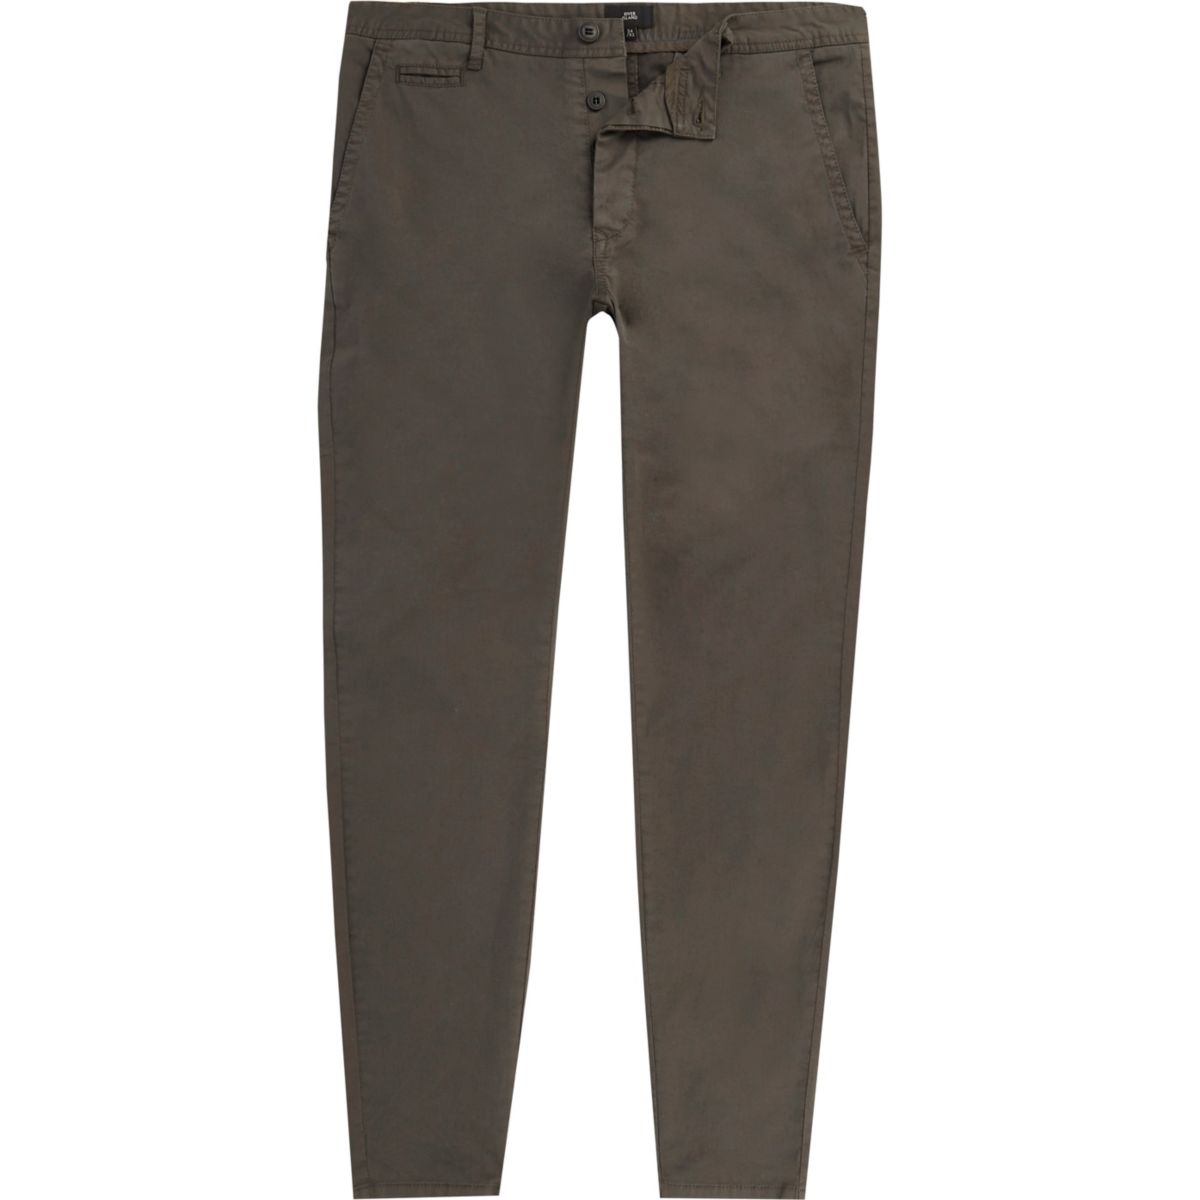 Dark grey super skinny fit chino trousers